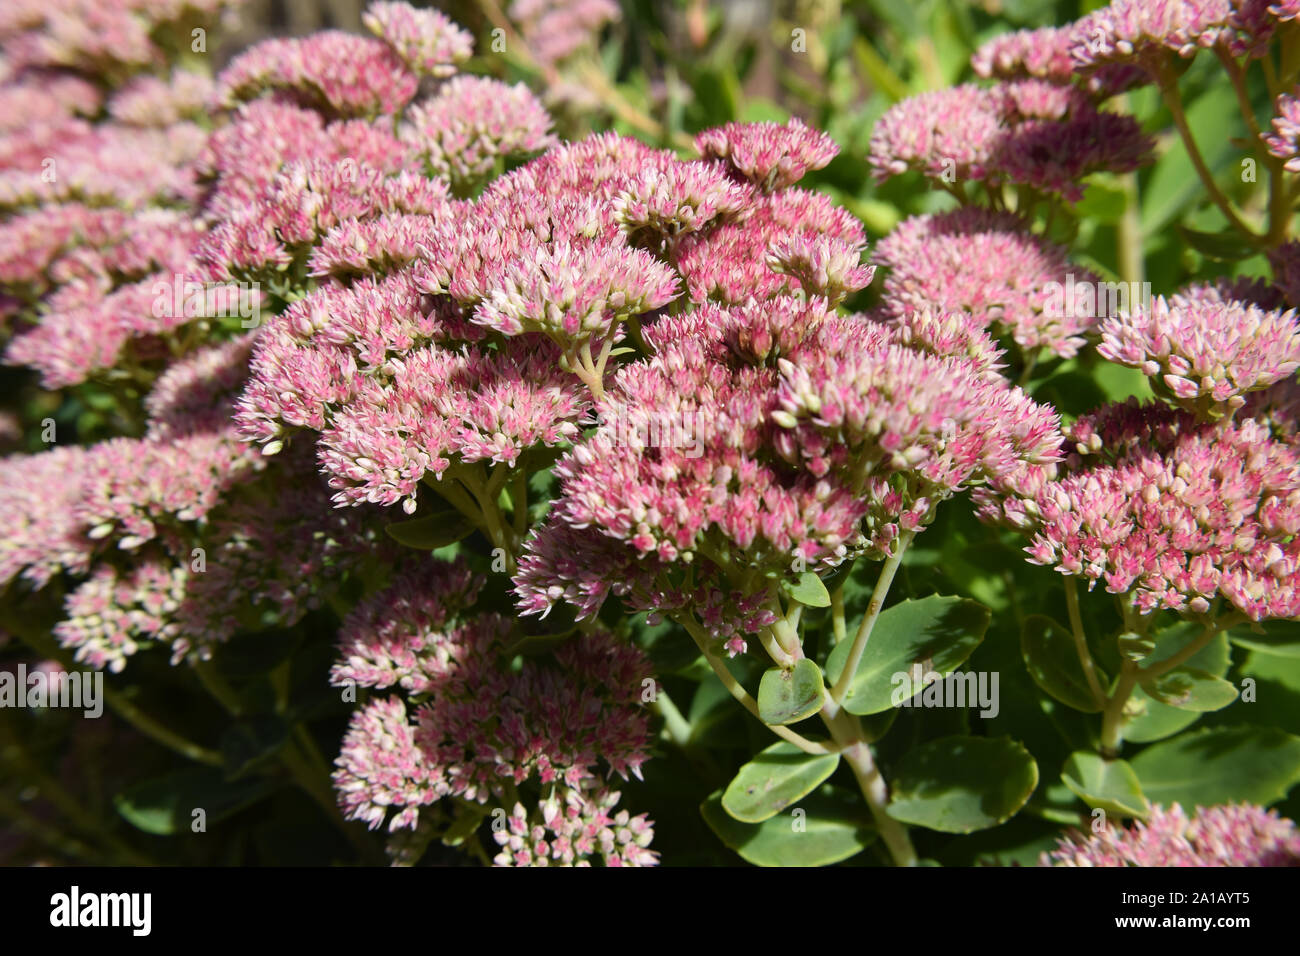 Flower Plant Small Pink Buds Stock Photos Amp Flower Plant